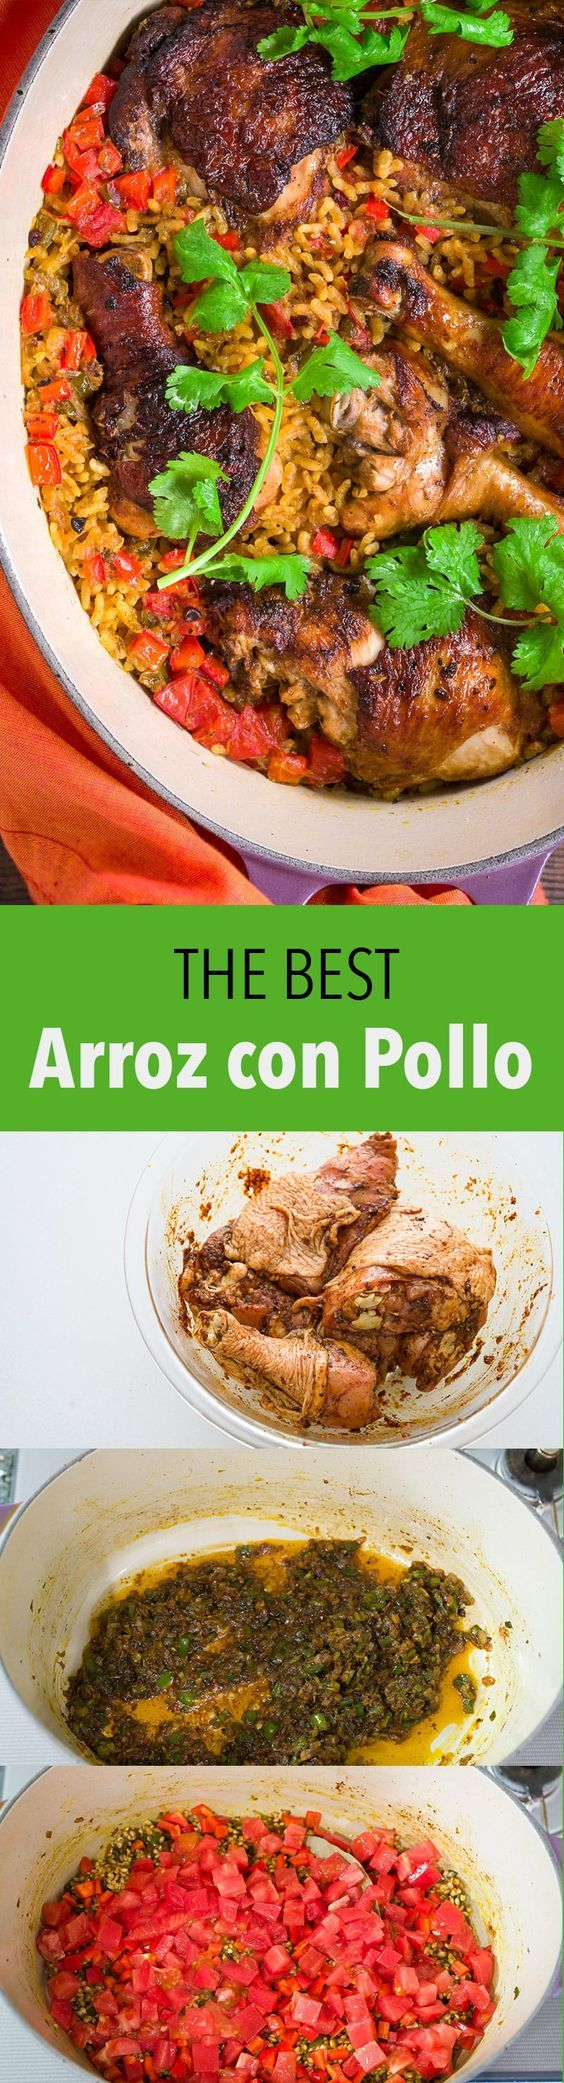 My tricks for making the BEST Arroz con Pollo (Chicken Rice), an easy and delicious one-pot meal.